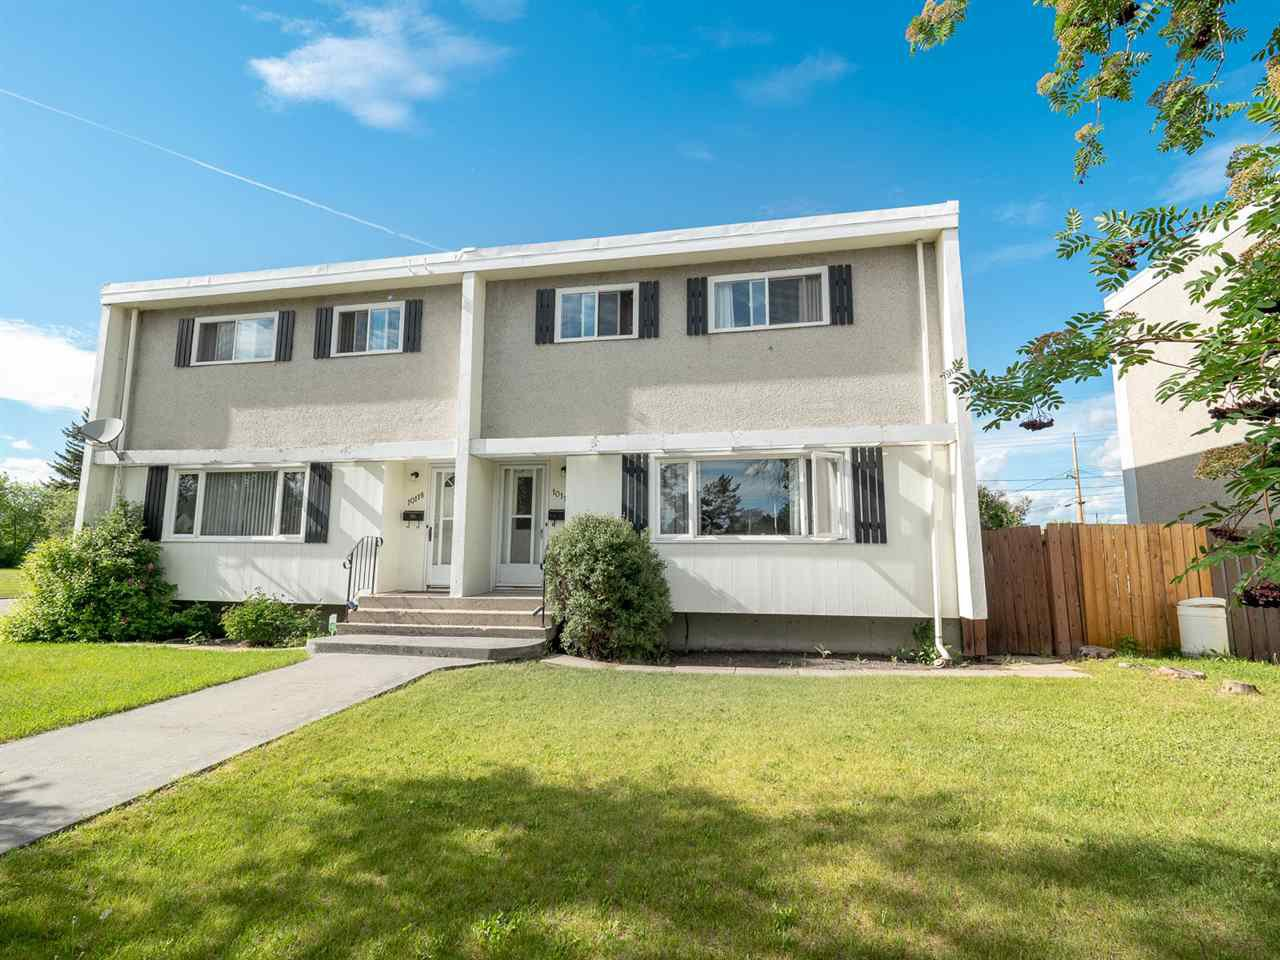 Main Photo: 10116 134 Avenue in Edmonton: Zone 01 House Half Duplex for sale : MLS®# E4161534